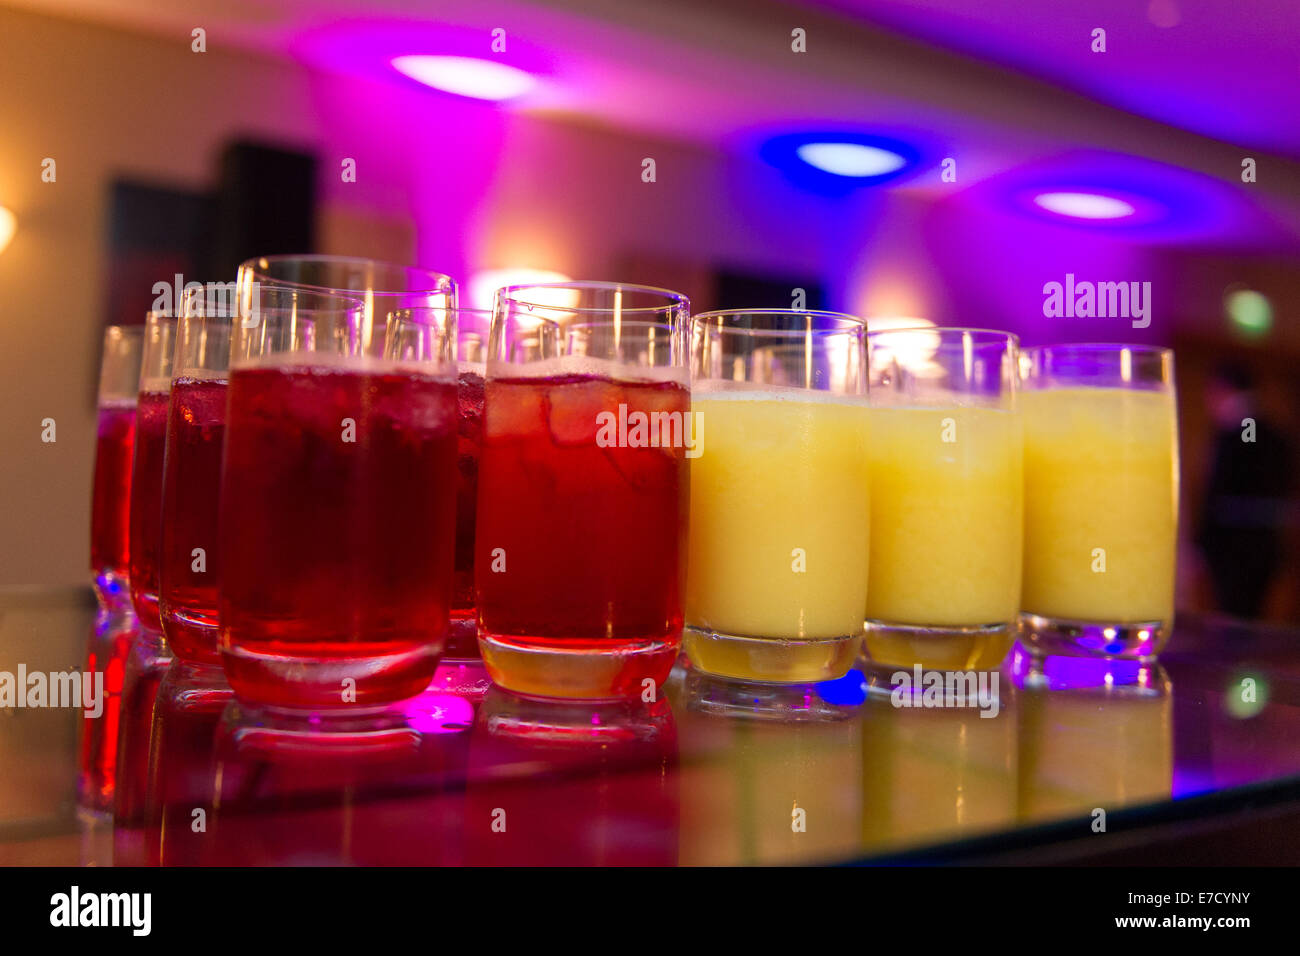 Non-alcoholic choices of drink at an event. Cranberry juice and orange juice. - Stock Image